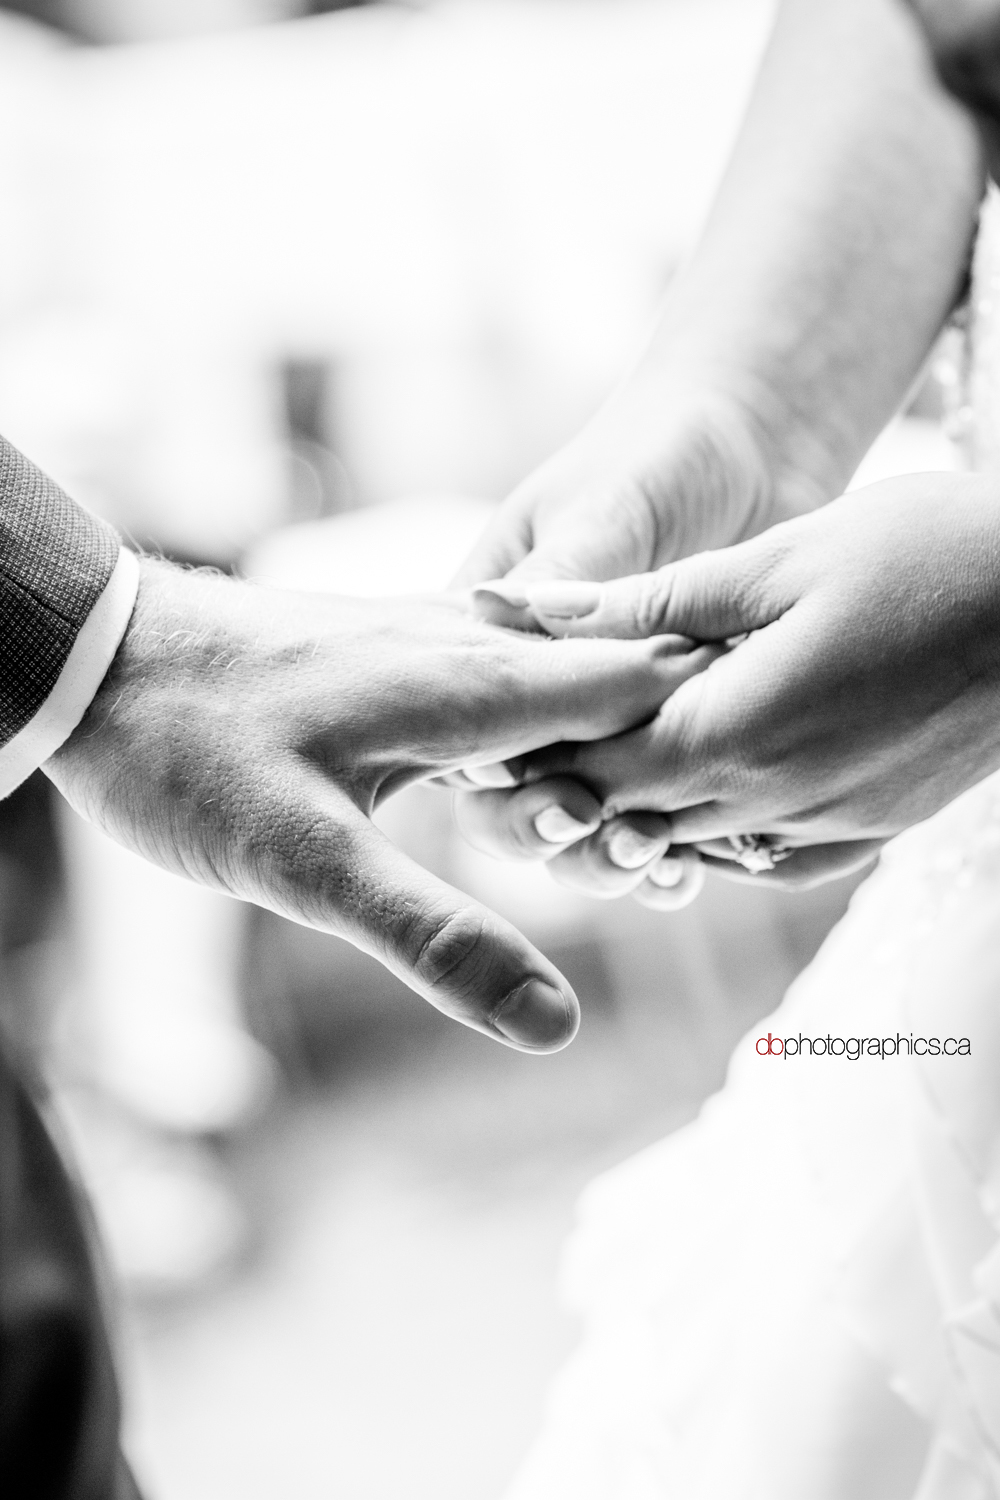 Gaea & Kurt Got Married - 20140628 - 0284.jpg